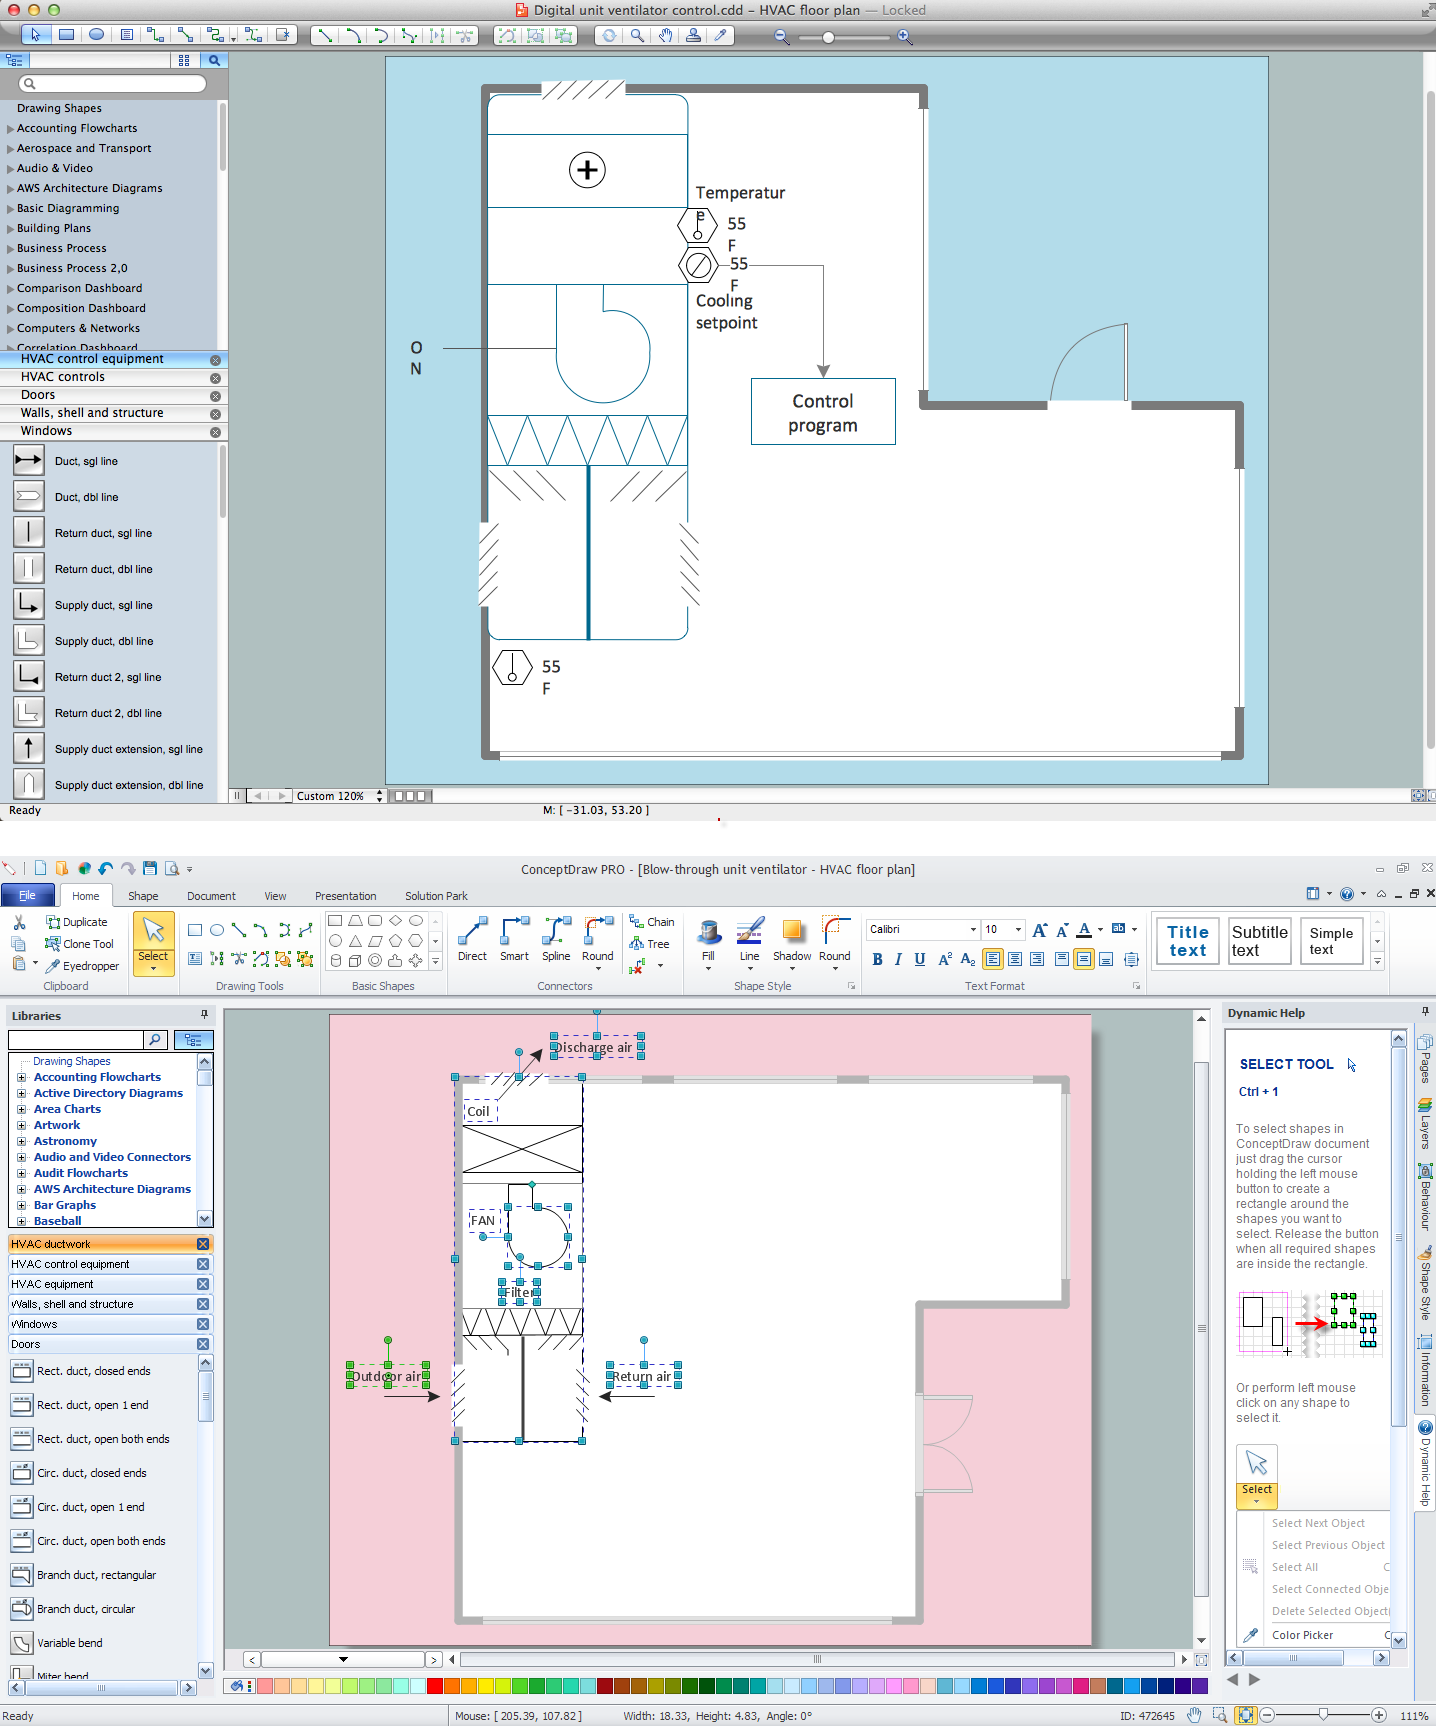 House Elrctrical Plan Software house electrical plan software electrical diagram software program for making wiring diagrams at edmiracle.co